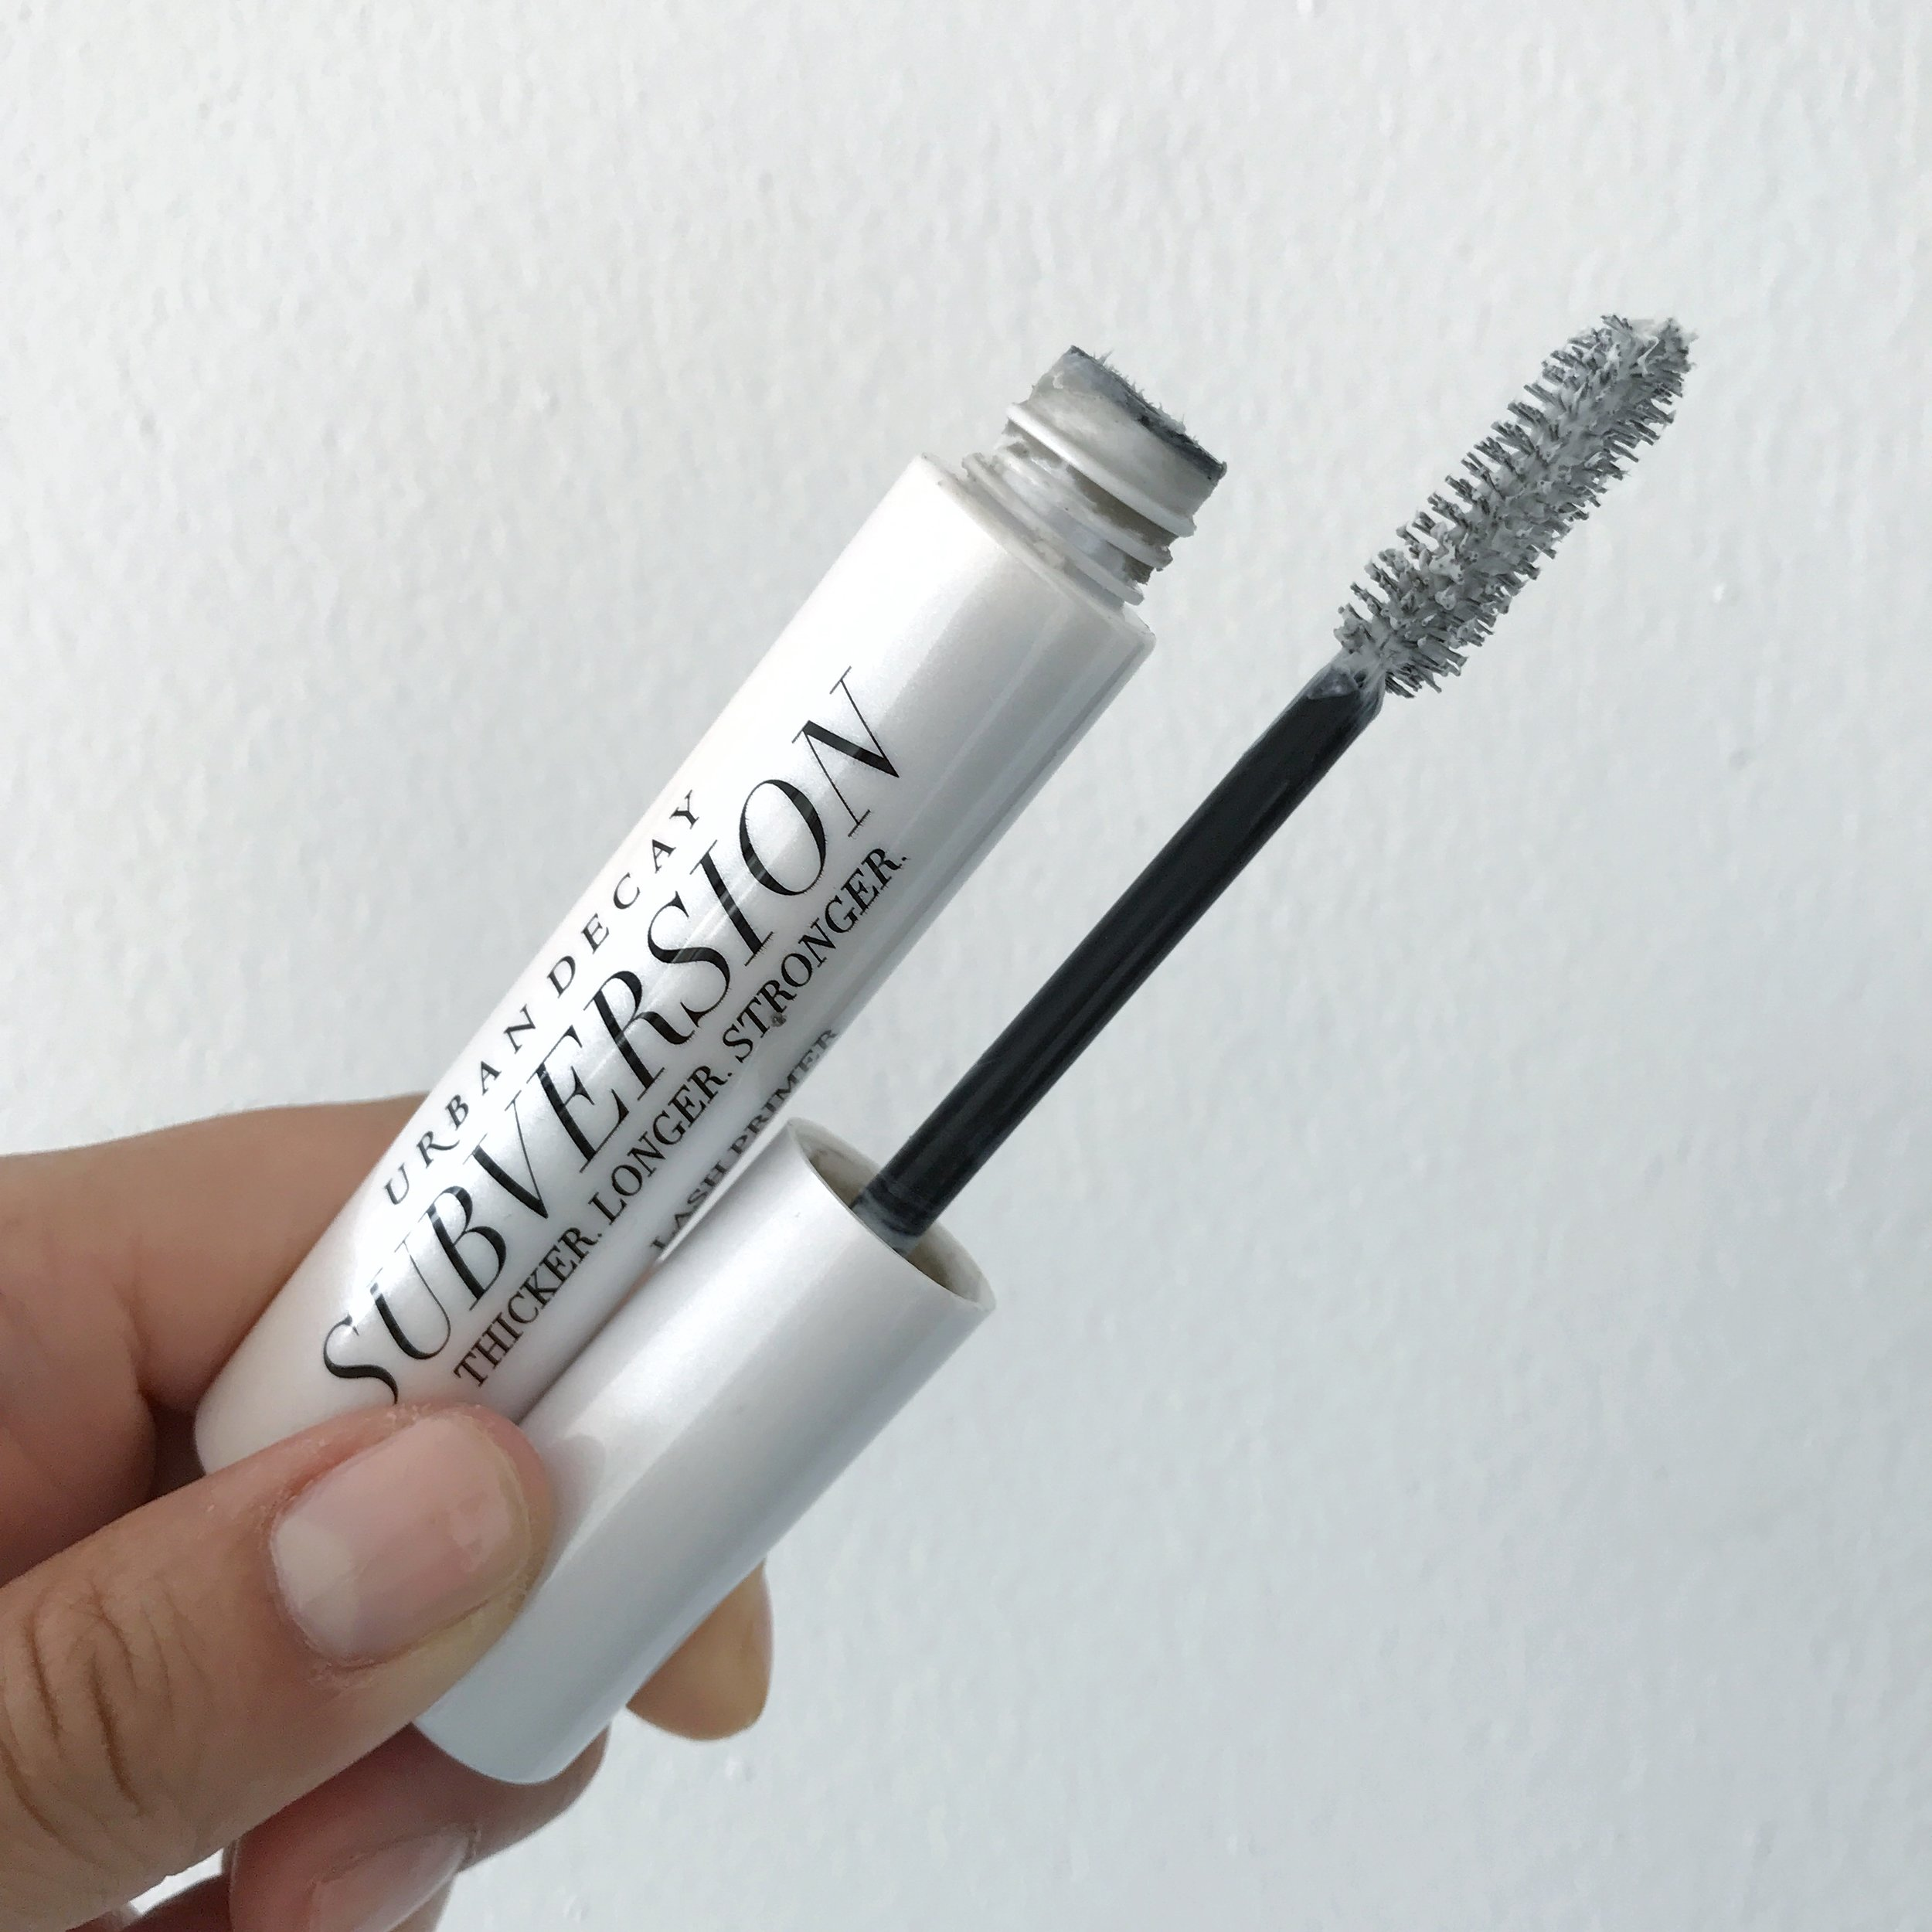 Tip: Apply  lash primer  generously to one eye first. While primer is still wet, apply mascara over it. Don't worry the white will disappear.